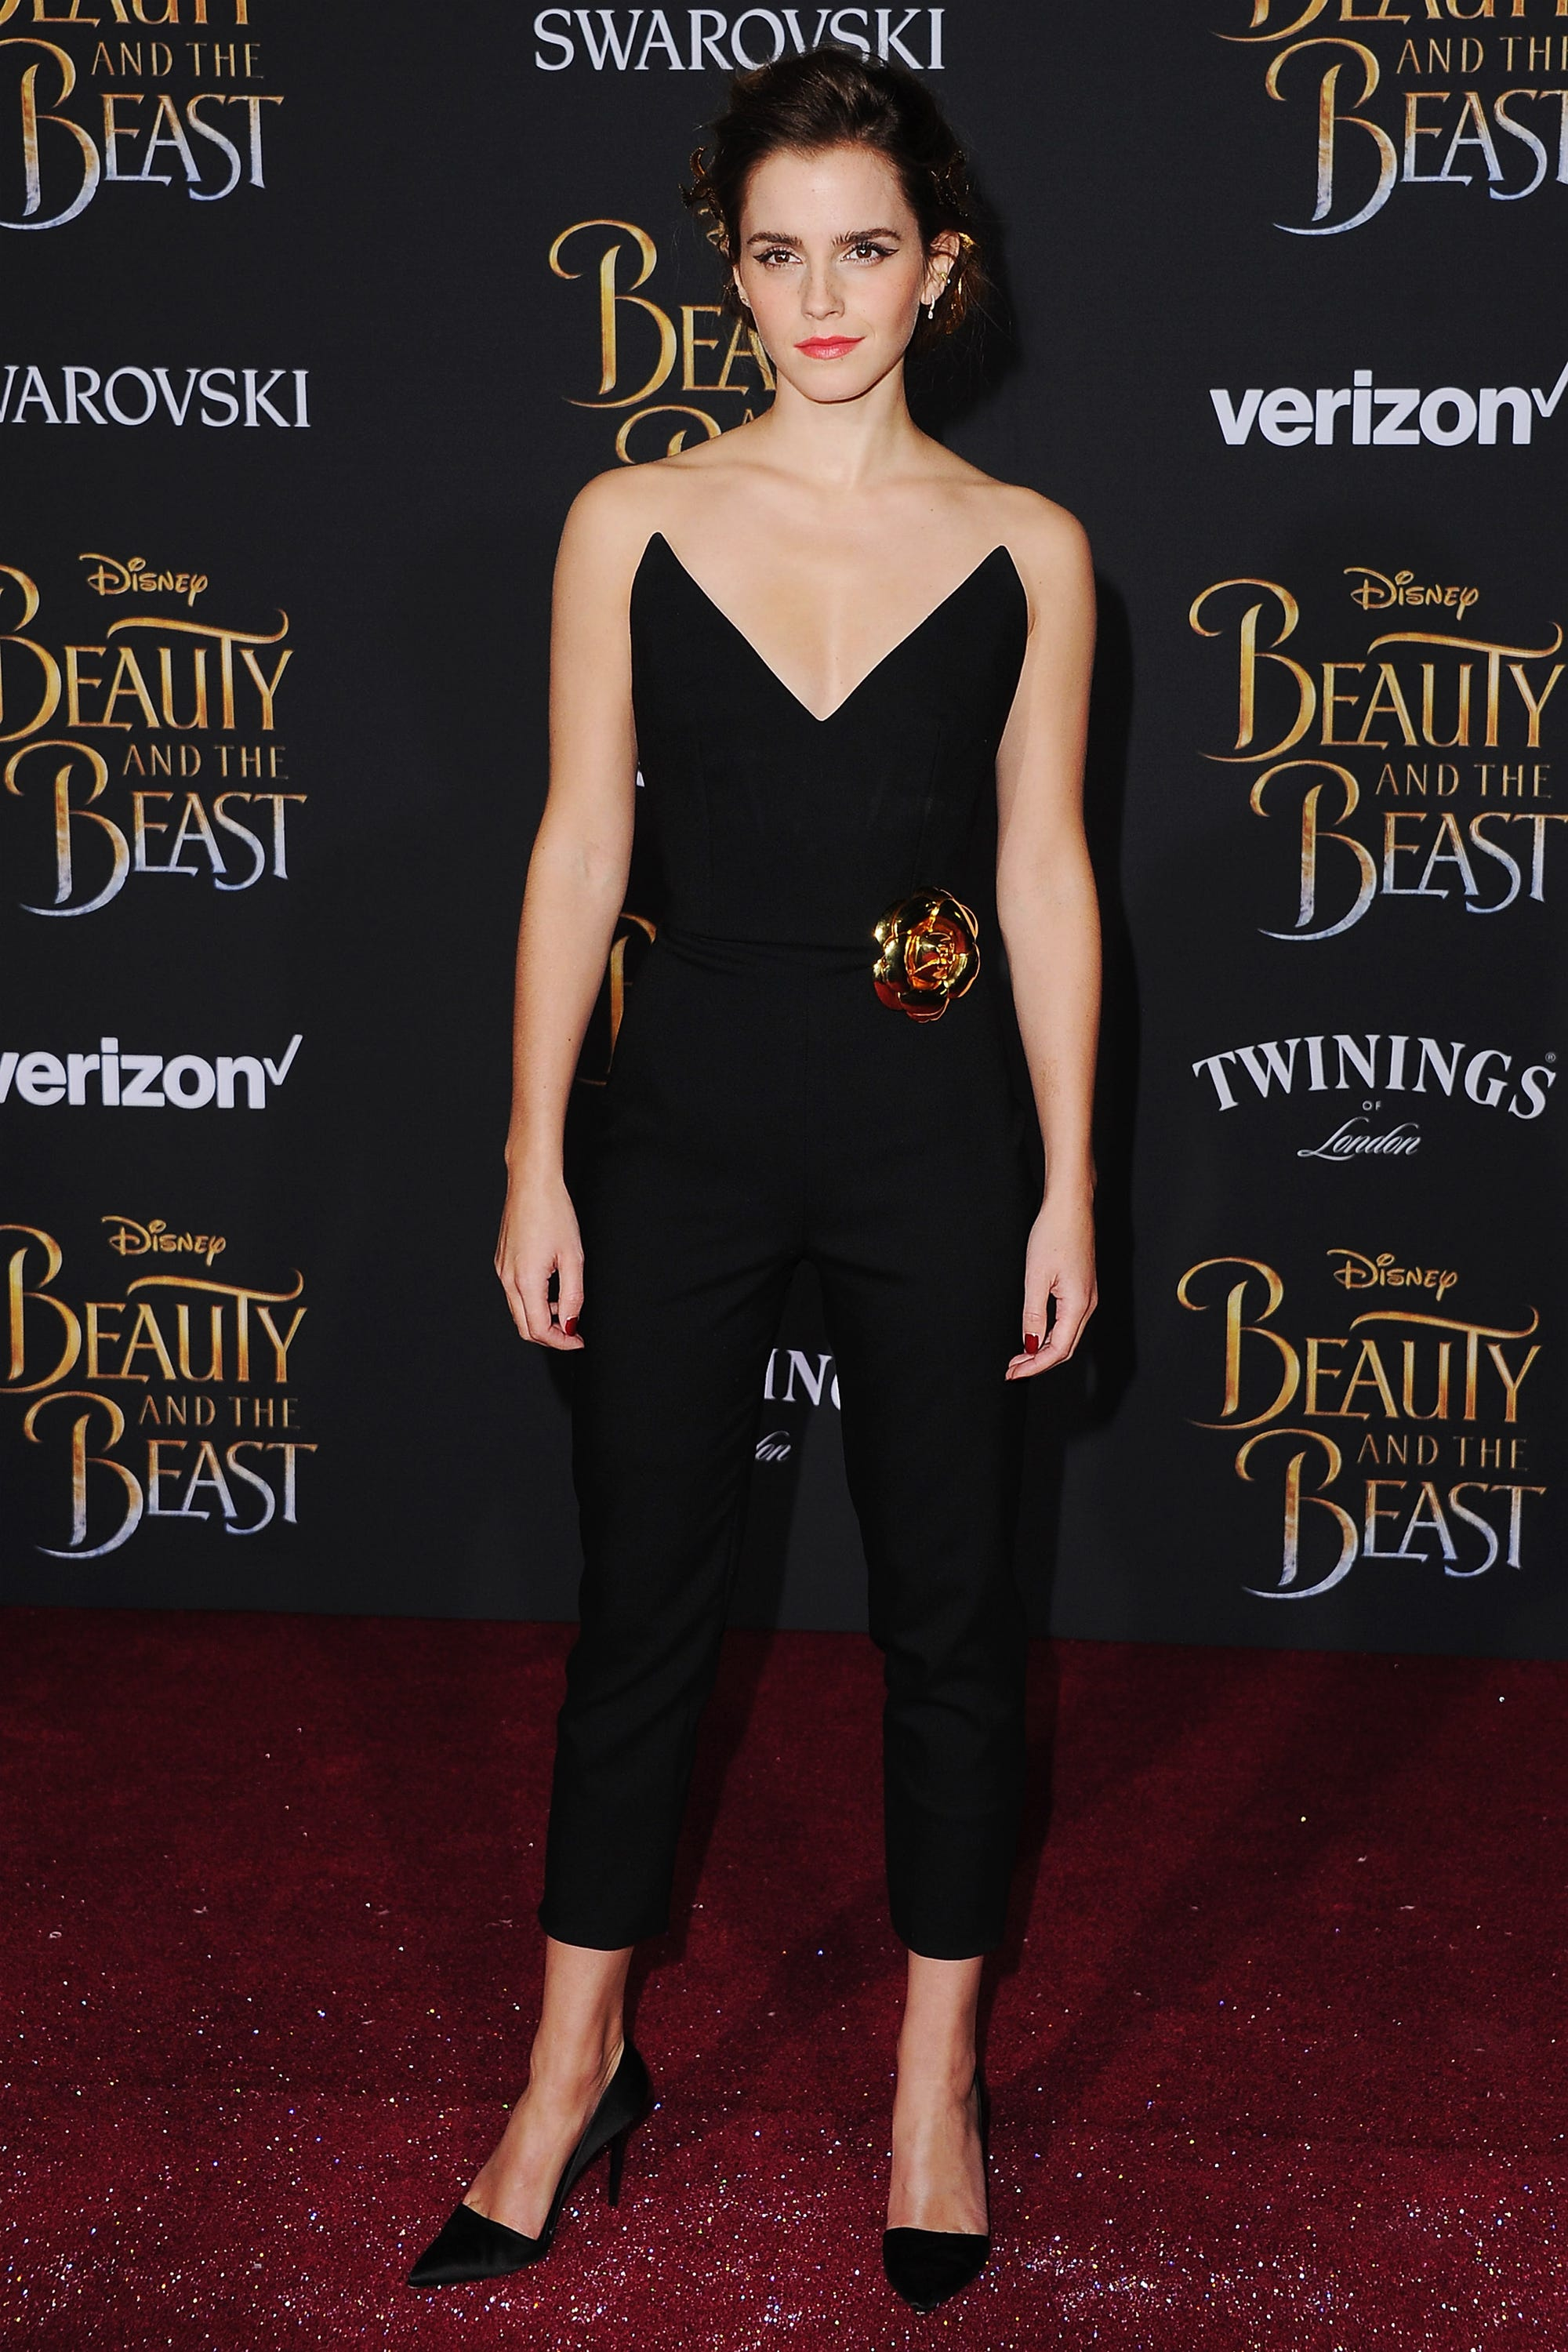 Emma Watson Beauty And The Beast Red Carpet Dresses